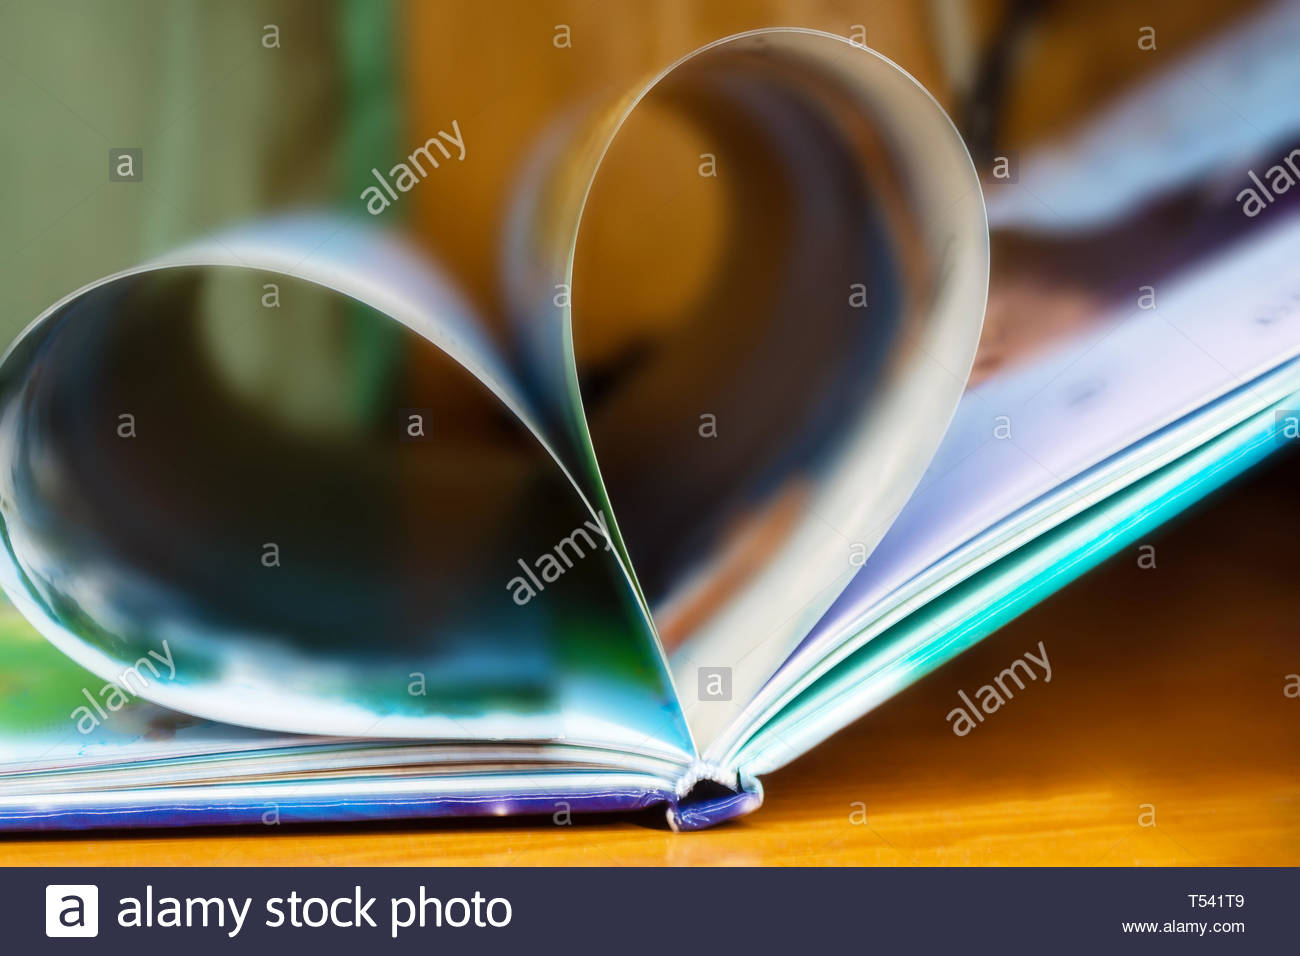 The blurring of the book opens on the desk, the pages rolls together to form a heart, shallow depth - Stock Image